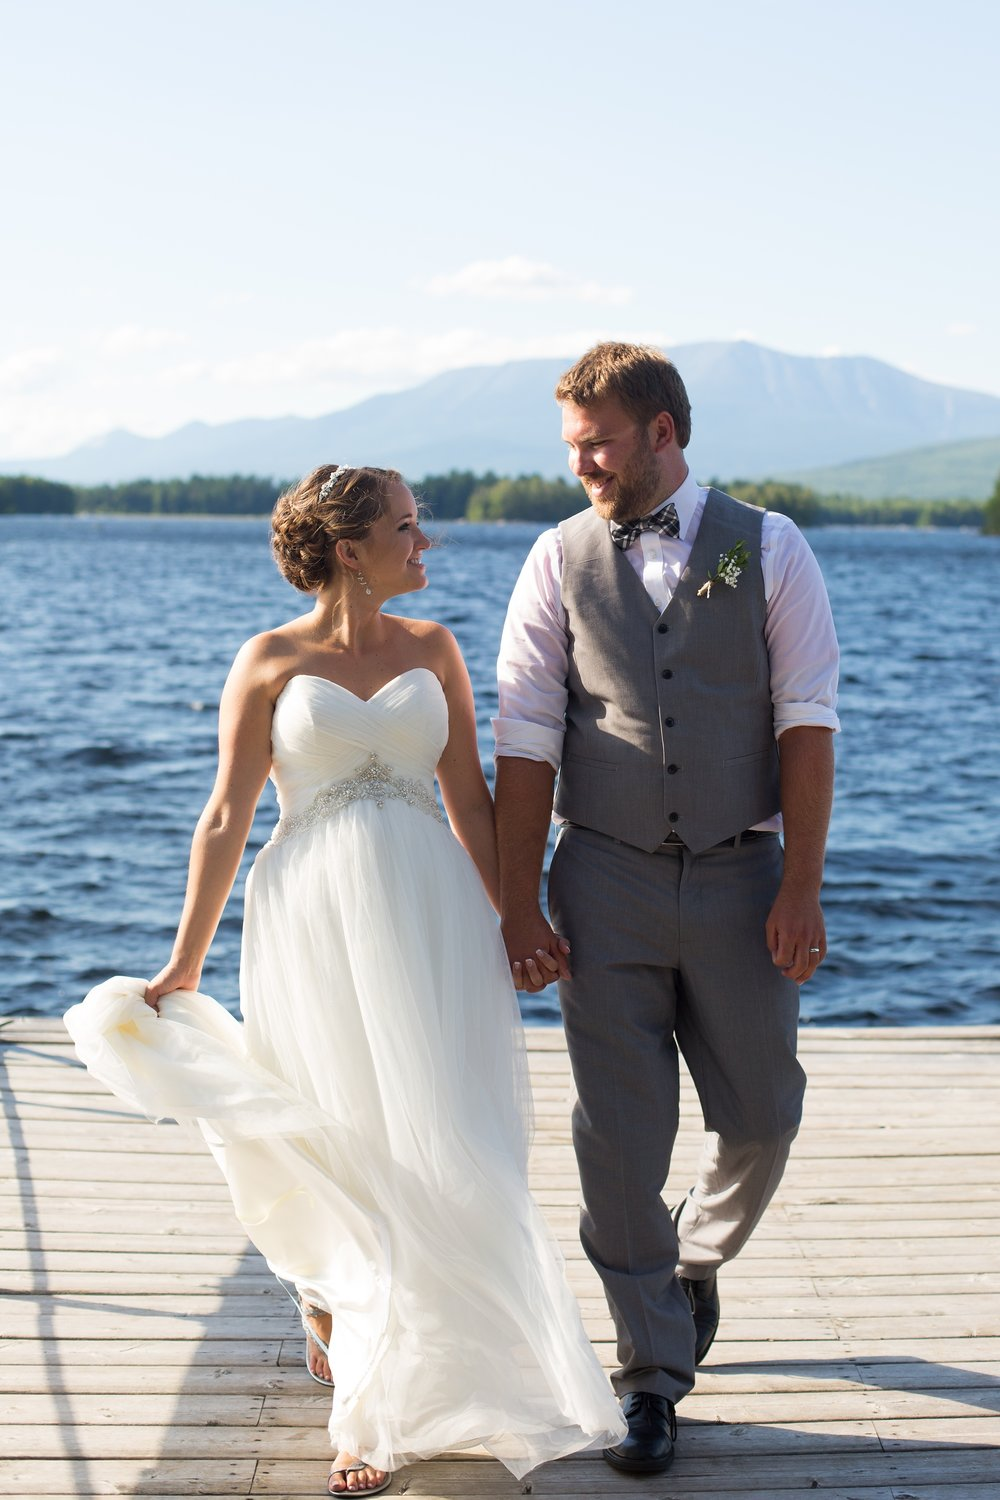 Wedding Photographers near Millinocket Maine